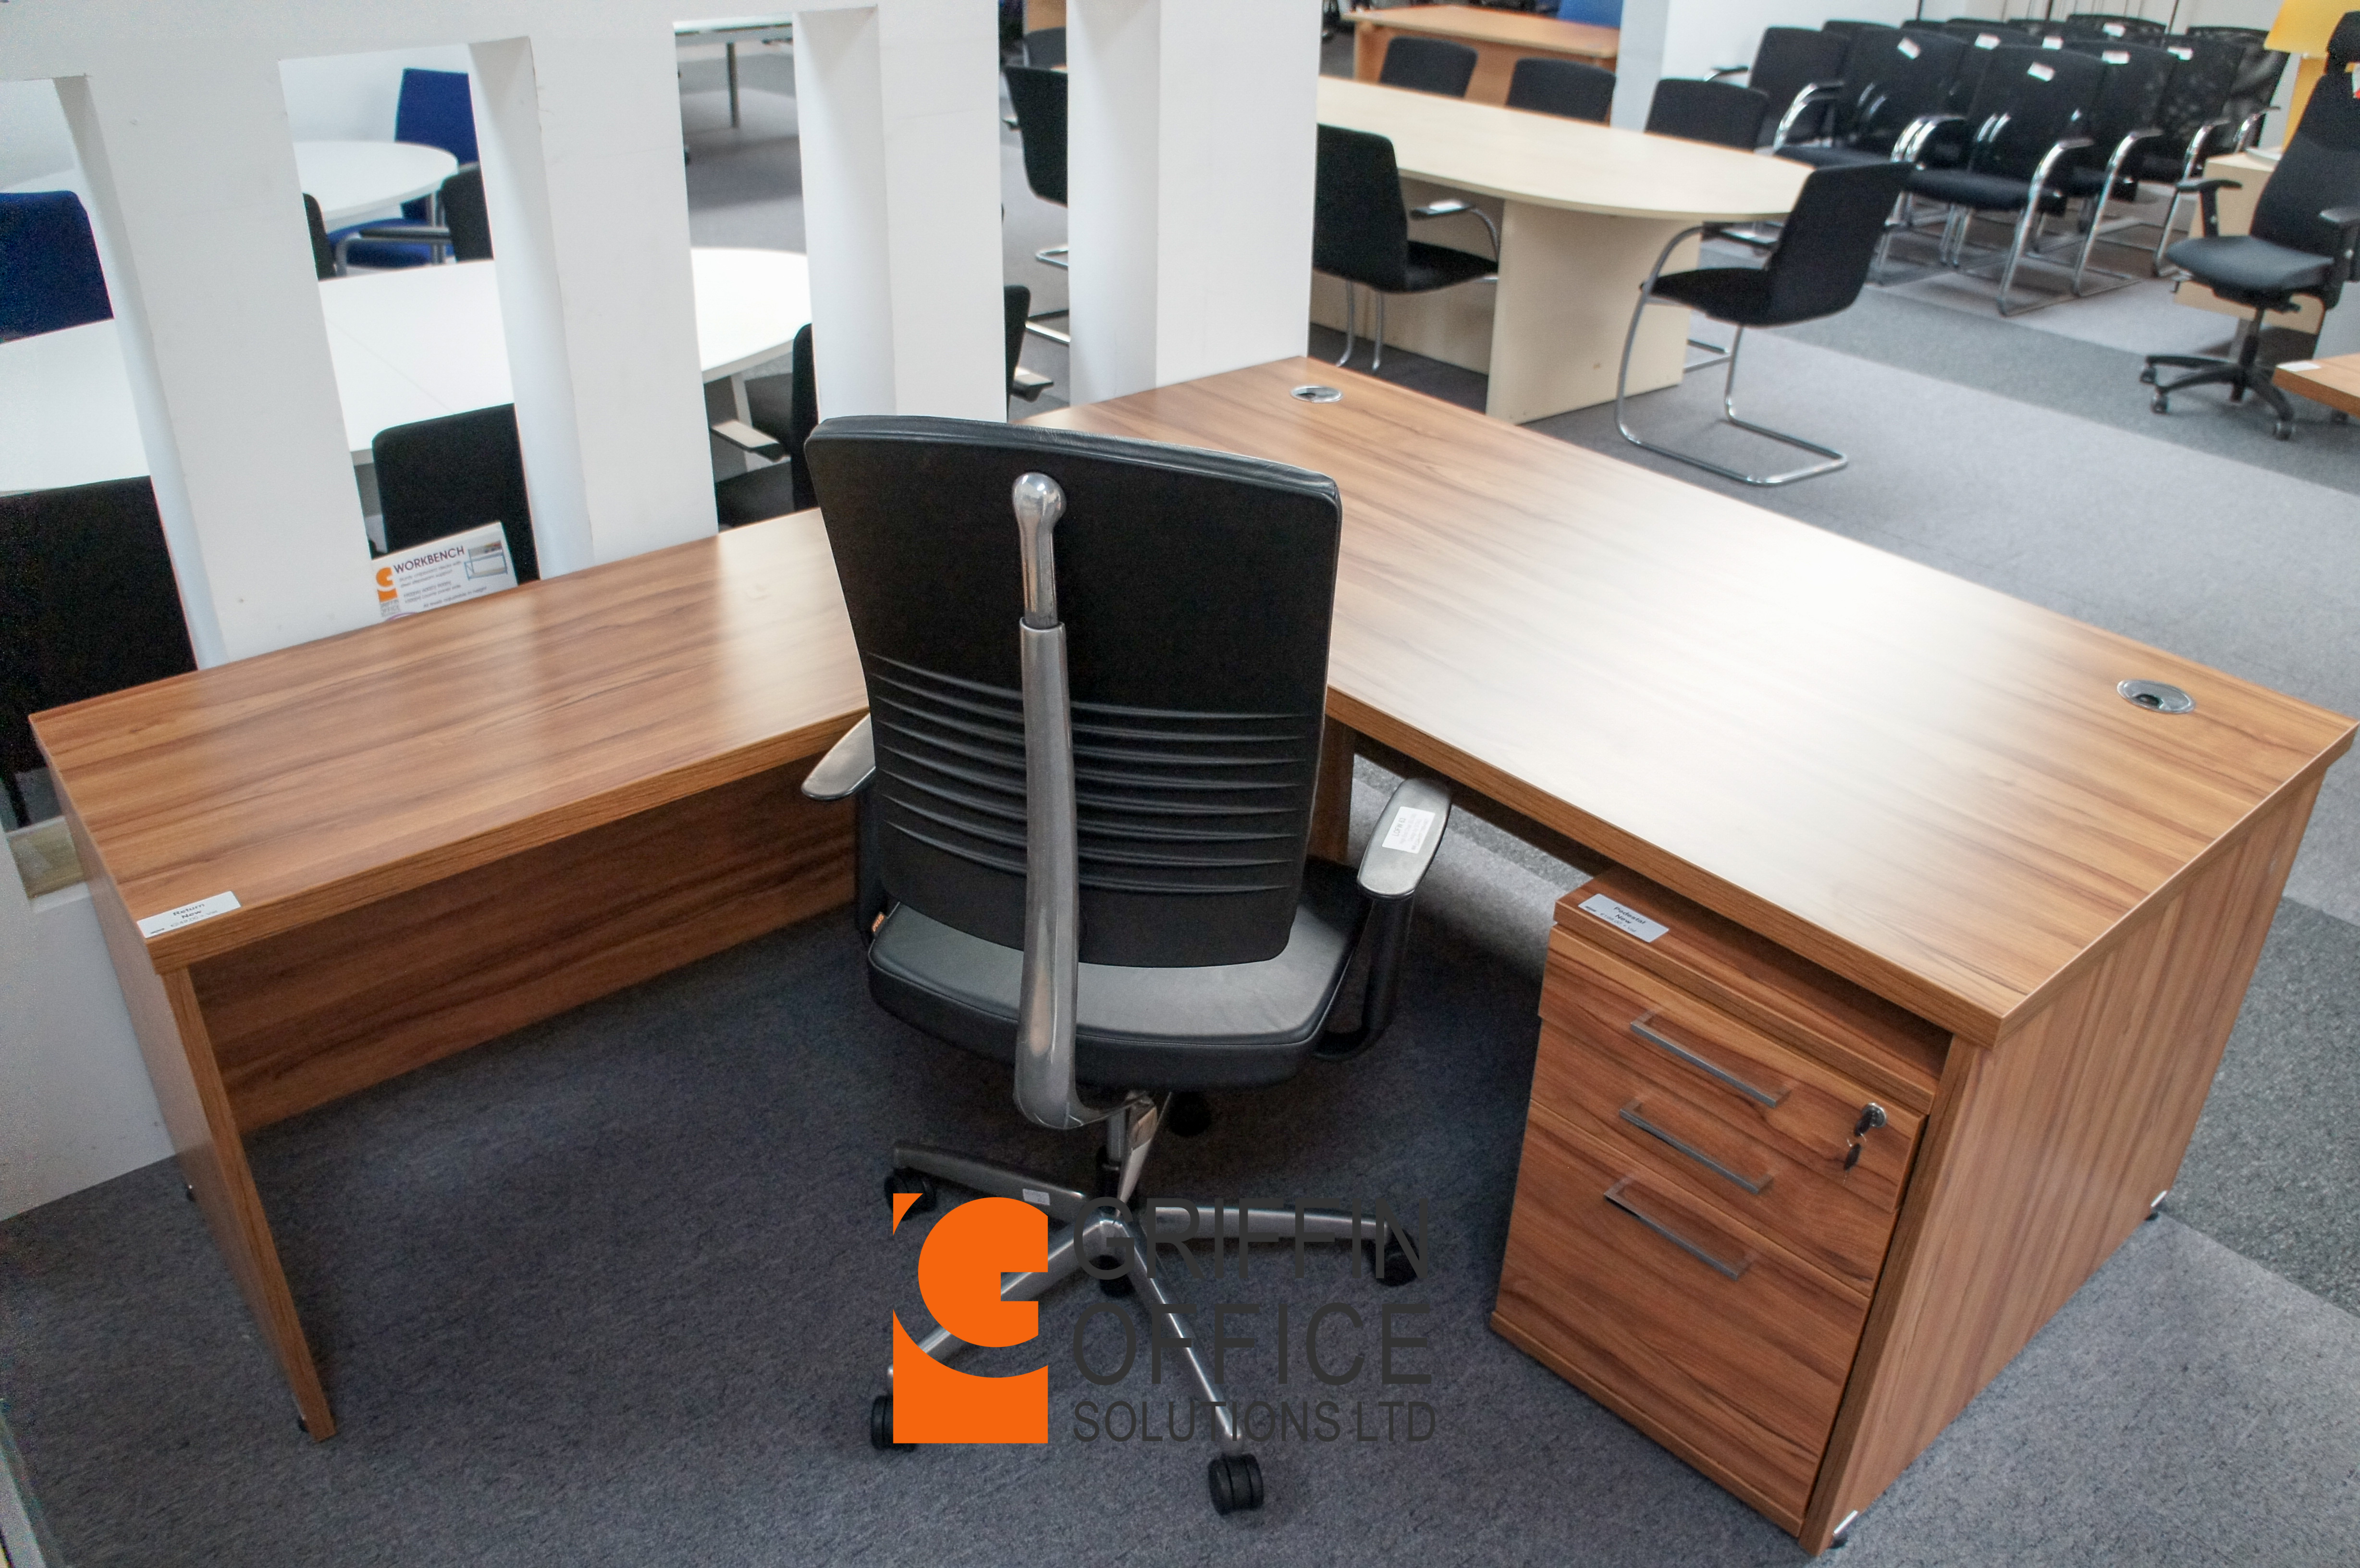 steelcase solutions inventory furniture peartreeofficefurniture standing free peartree x office architectural pathways executive private cubicles